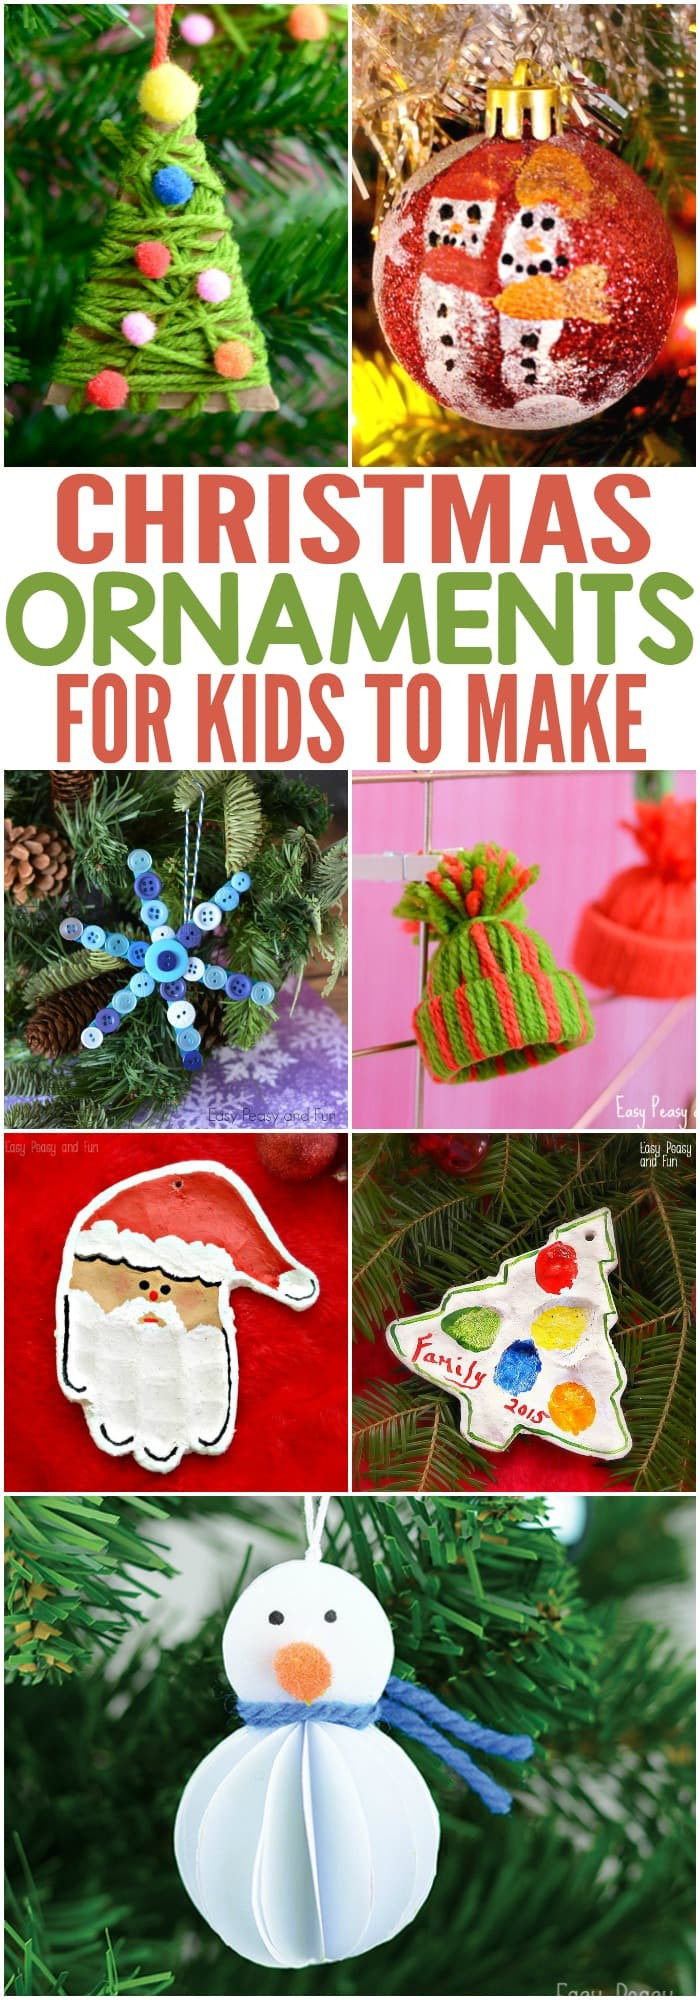 Best ideas about DIY Christmas Ornament For Kids . Save or Pin Jolly DIY Christmas Ornaments Ideas Homemade Memories Now.